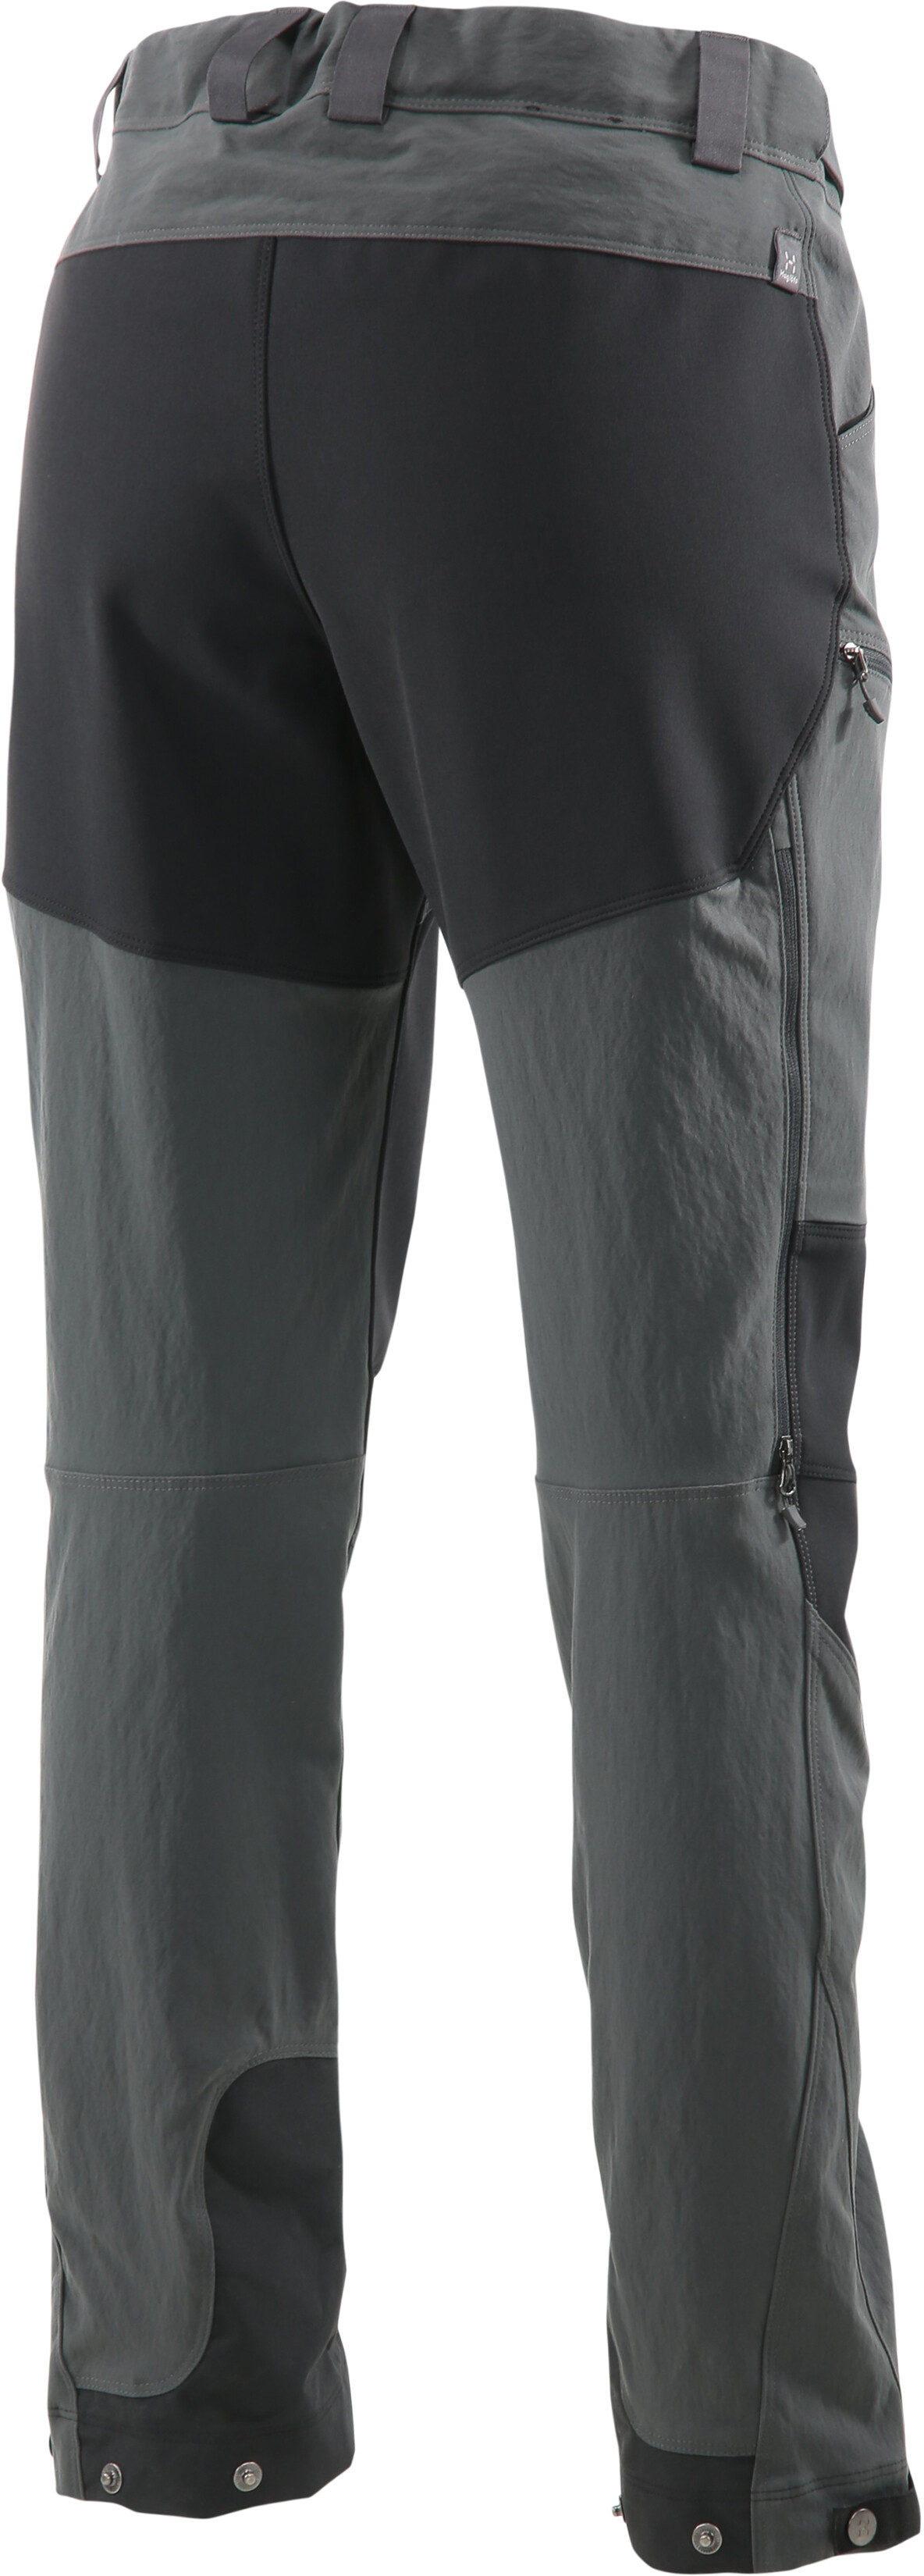 Haglofs Rugged Mountain Pants Women Magnetite True Black At Addnature Co Uk